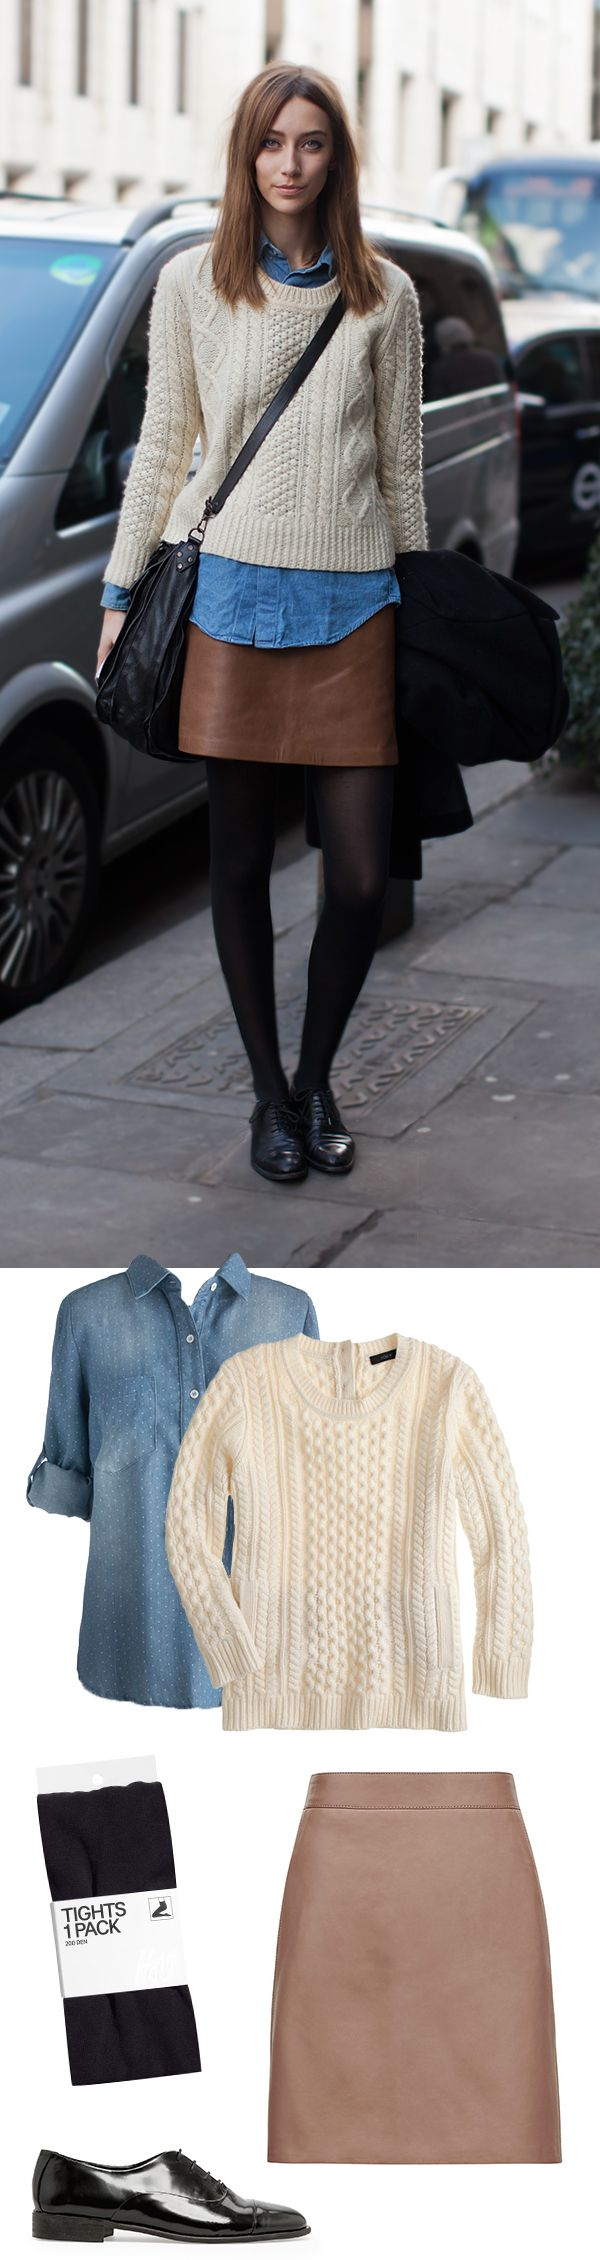 Steal Her Style: Alana Zimmer - Oh the lovely things